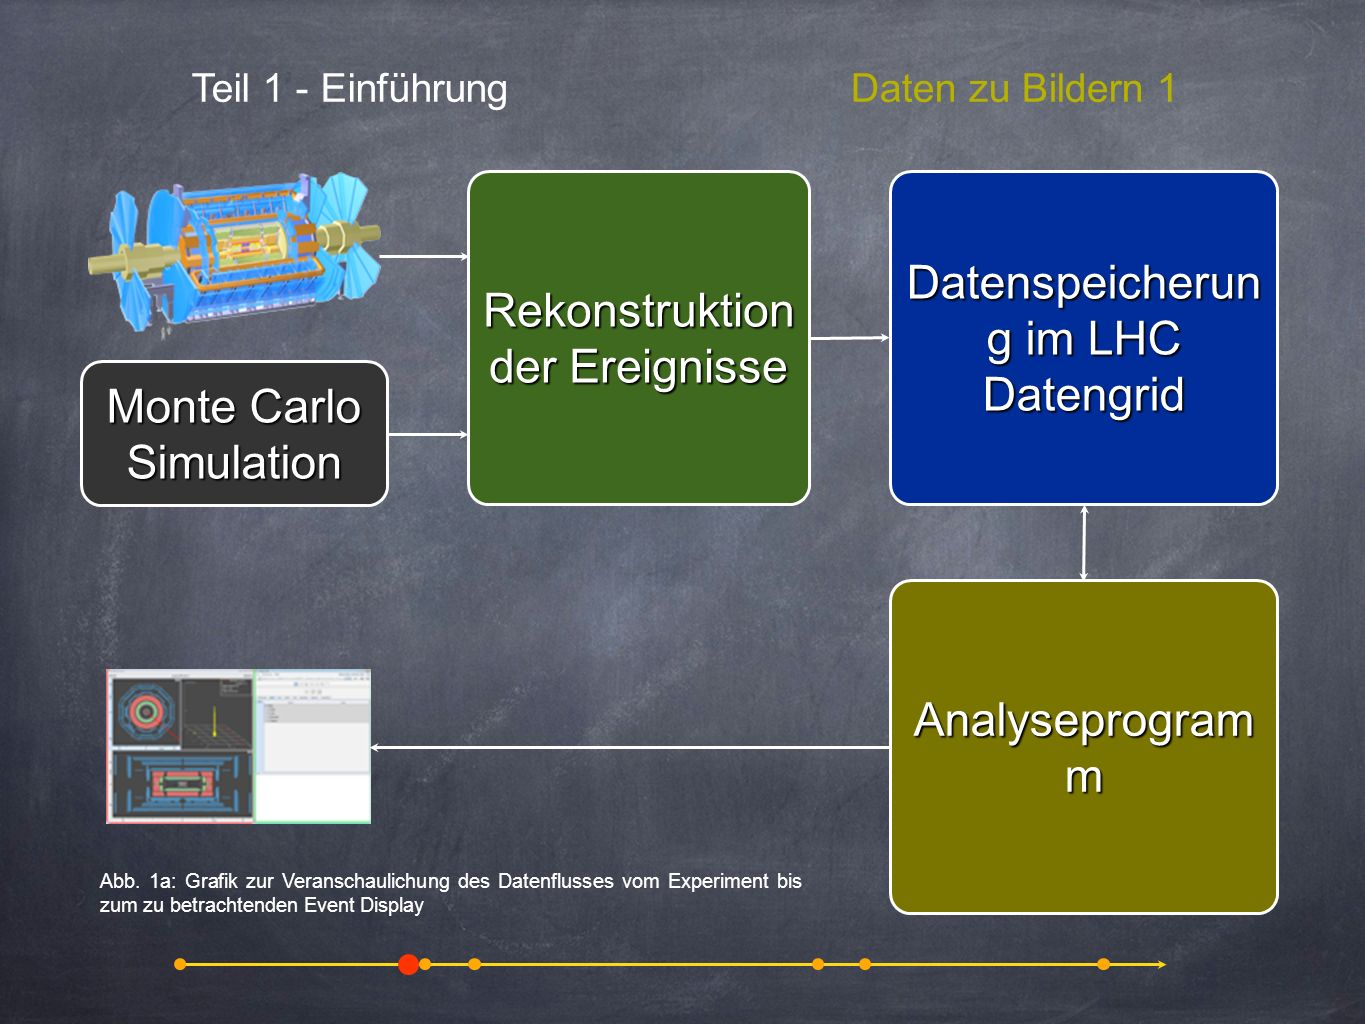 Teil 1 - EinführungPhysik 8 animation, video, pictures of annihilation and pair production from cosmic rays W + (τ)+ν(e+ν+ν)+ν W+W+ ν Z0Z0 e Z 0 e+e e e W+W+ ν ν ν e τ Signalereignis Untergrundereignisse (b)[b](e+ν+D * )+[b] vs.